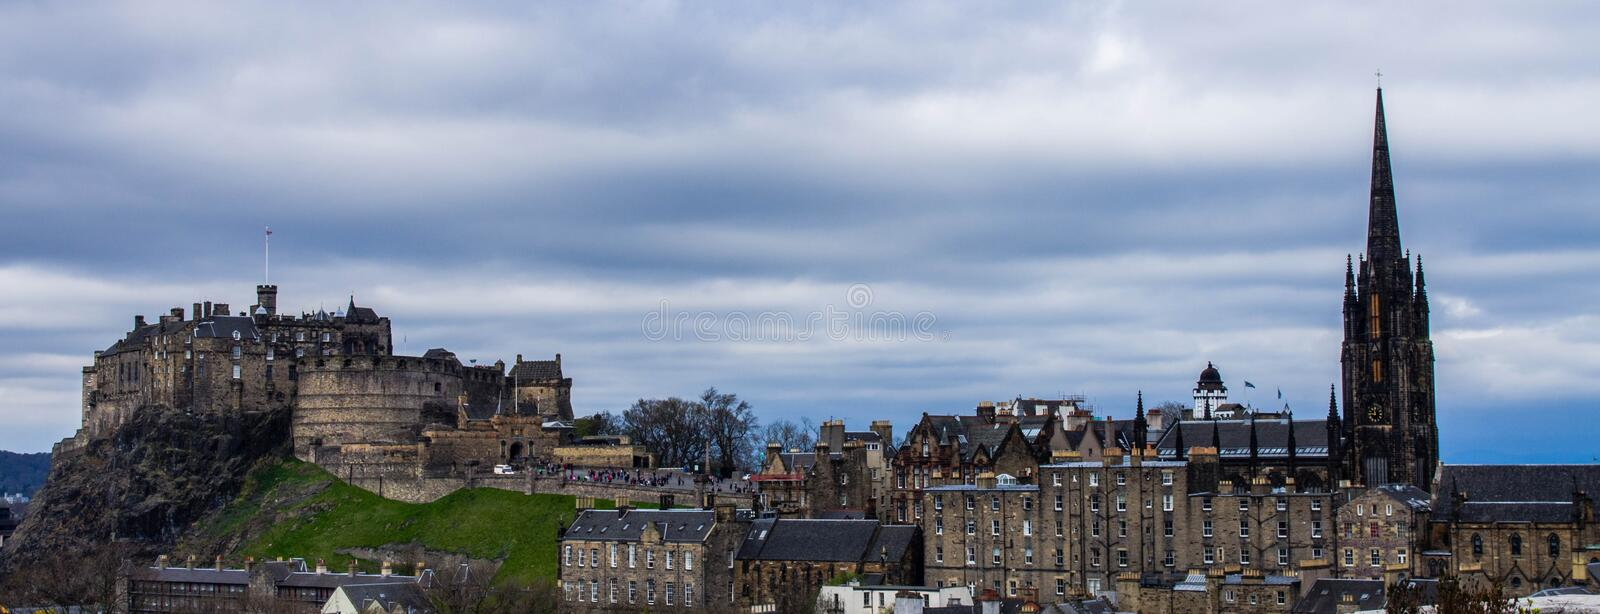 A view from the National Museum of Scotland - edinburgh. Edinburgh castle and the royal mile seen from National Museum of Scotland royalty free stock photography